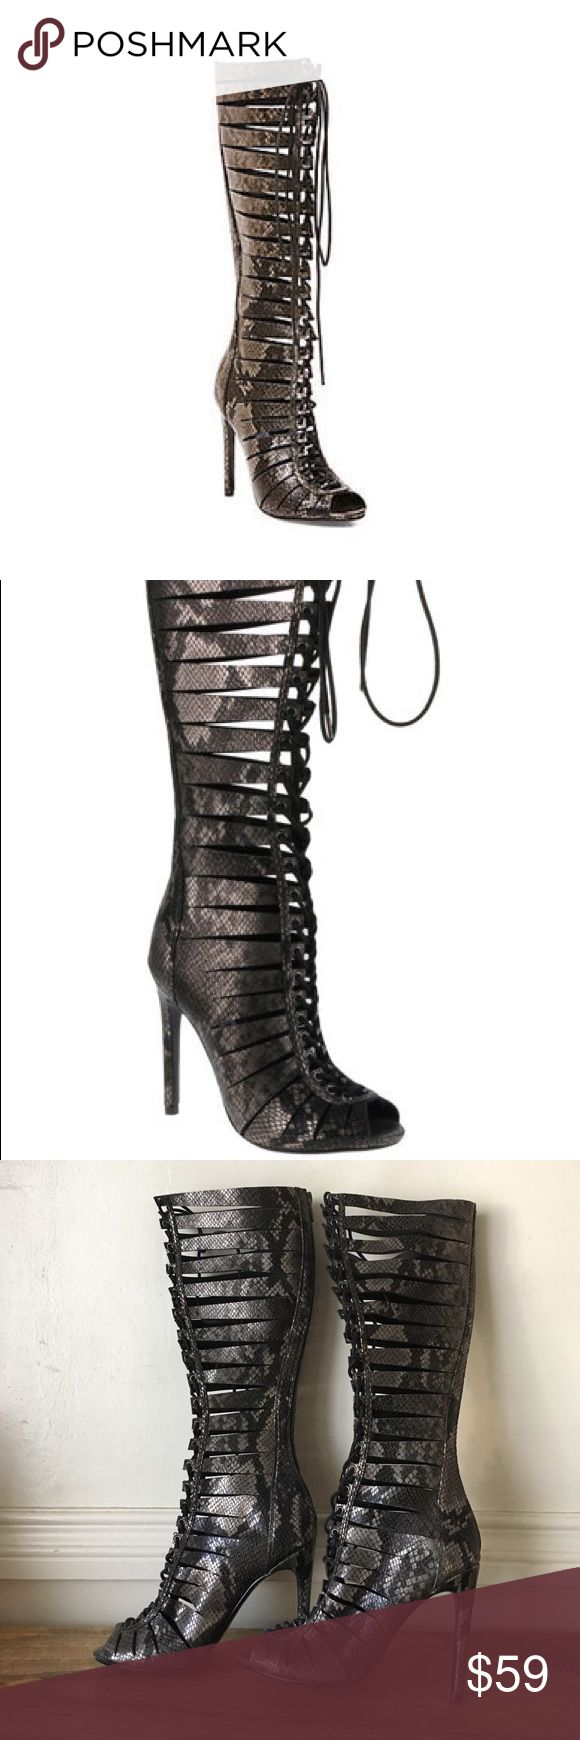 STEVE MADDEN CRYPIC LEATHER GLADIATOR HIGH HEELS Be a fashion warrior in these Cryptic Leather Gladiator High Heels by Steve Madden. In sultry black snake skin-like leather, these heels extend up to the knee with a pee toe and a lace fed through the front loops up to the top. You feel stylishly empowered when you step into room wearing this killer heels, you can pair them with a short LBD to give the dress a sexy edge! Gently worn a few times with scuffs and marks from normal wear but no…